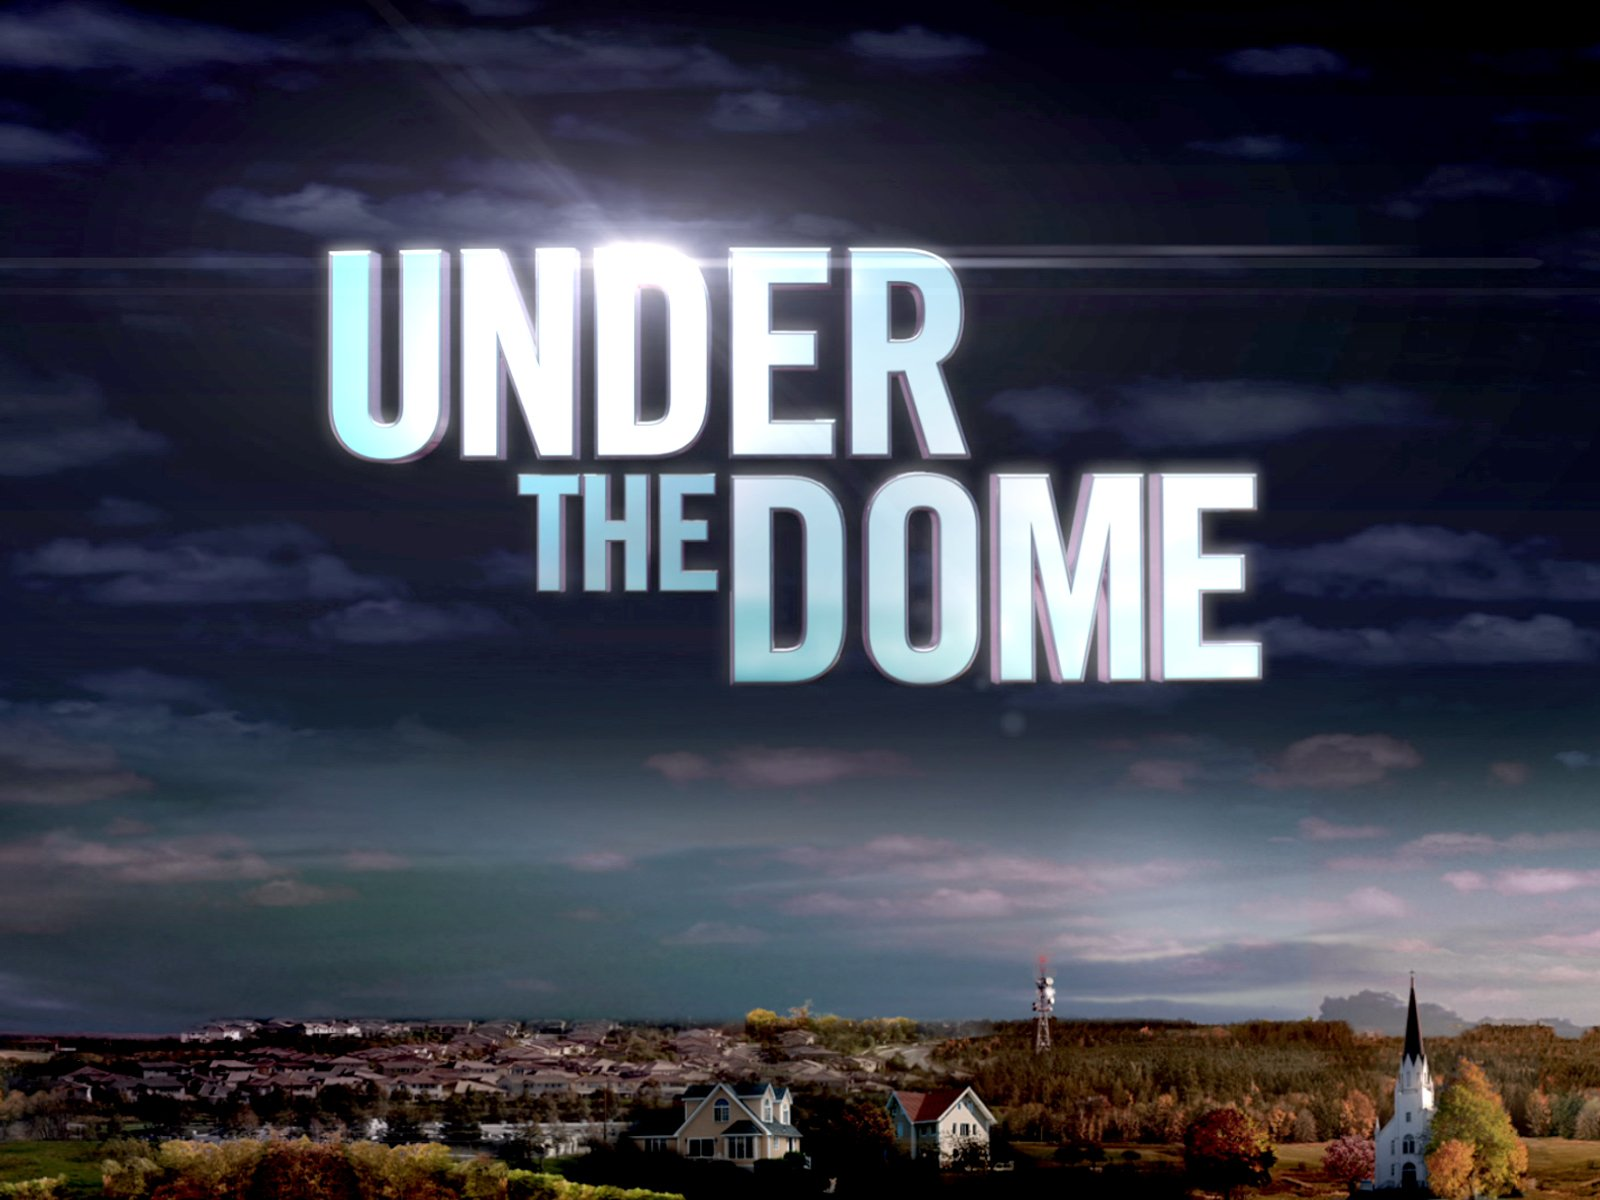 under the dome season 2 download